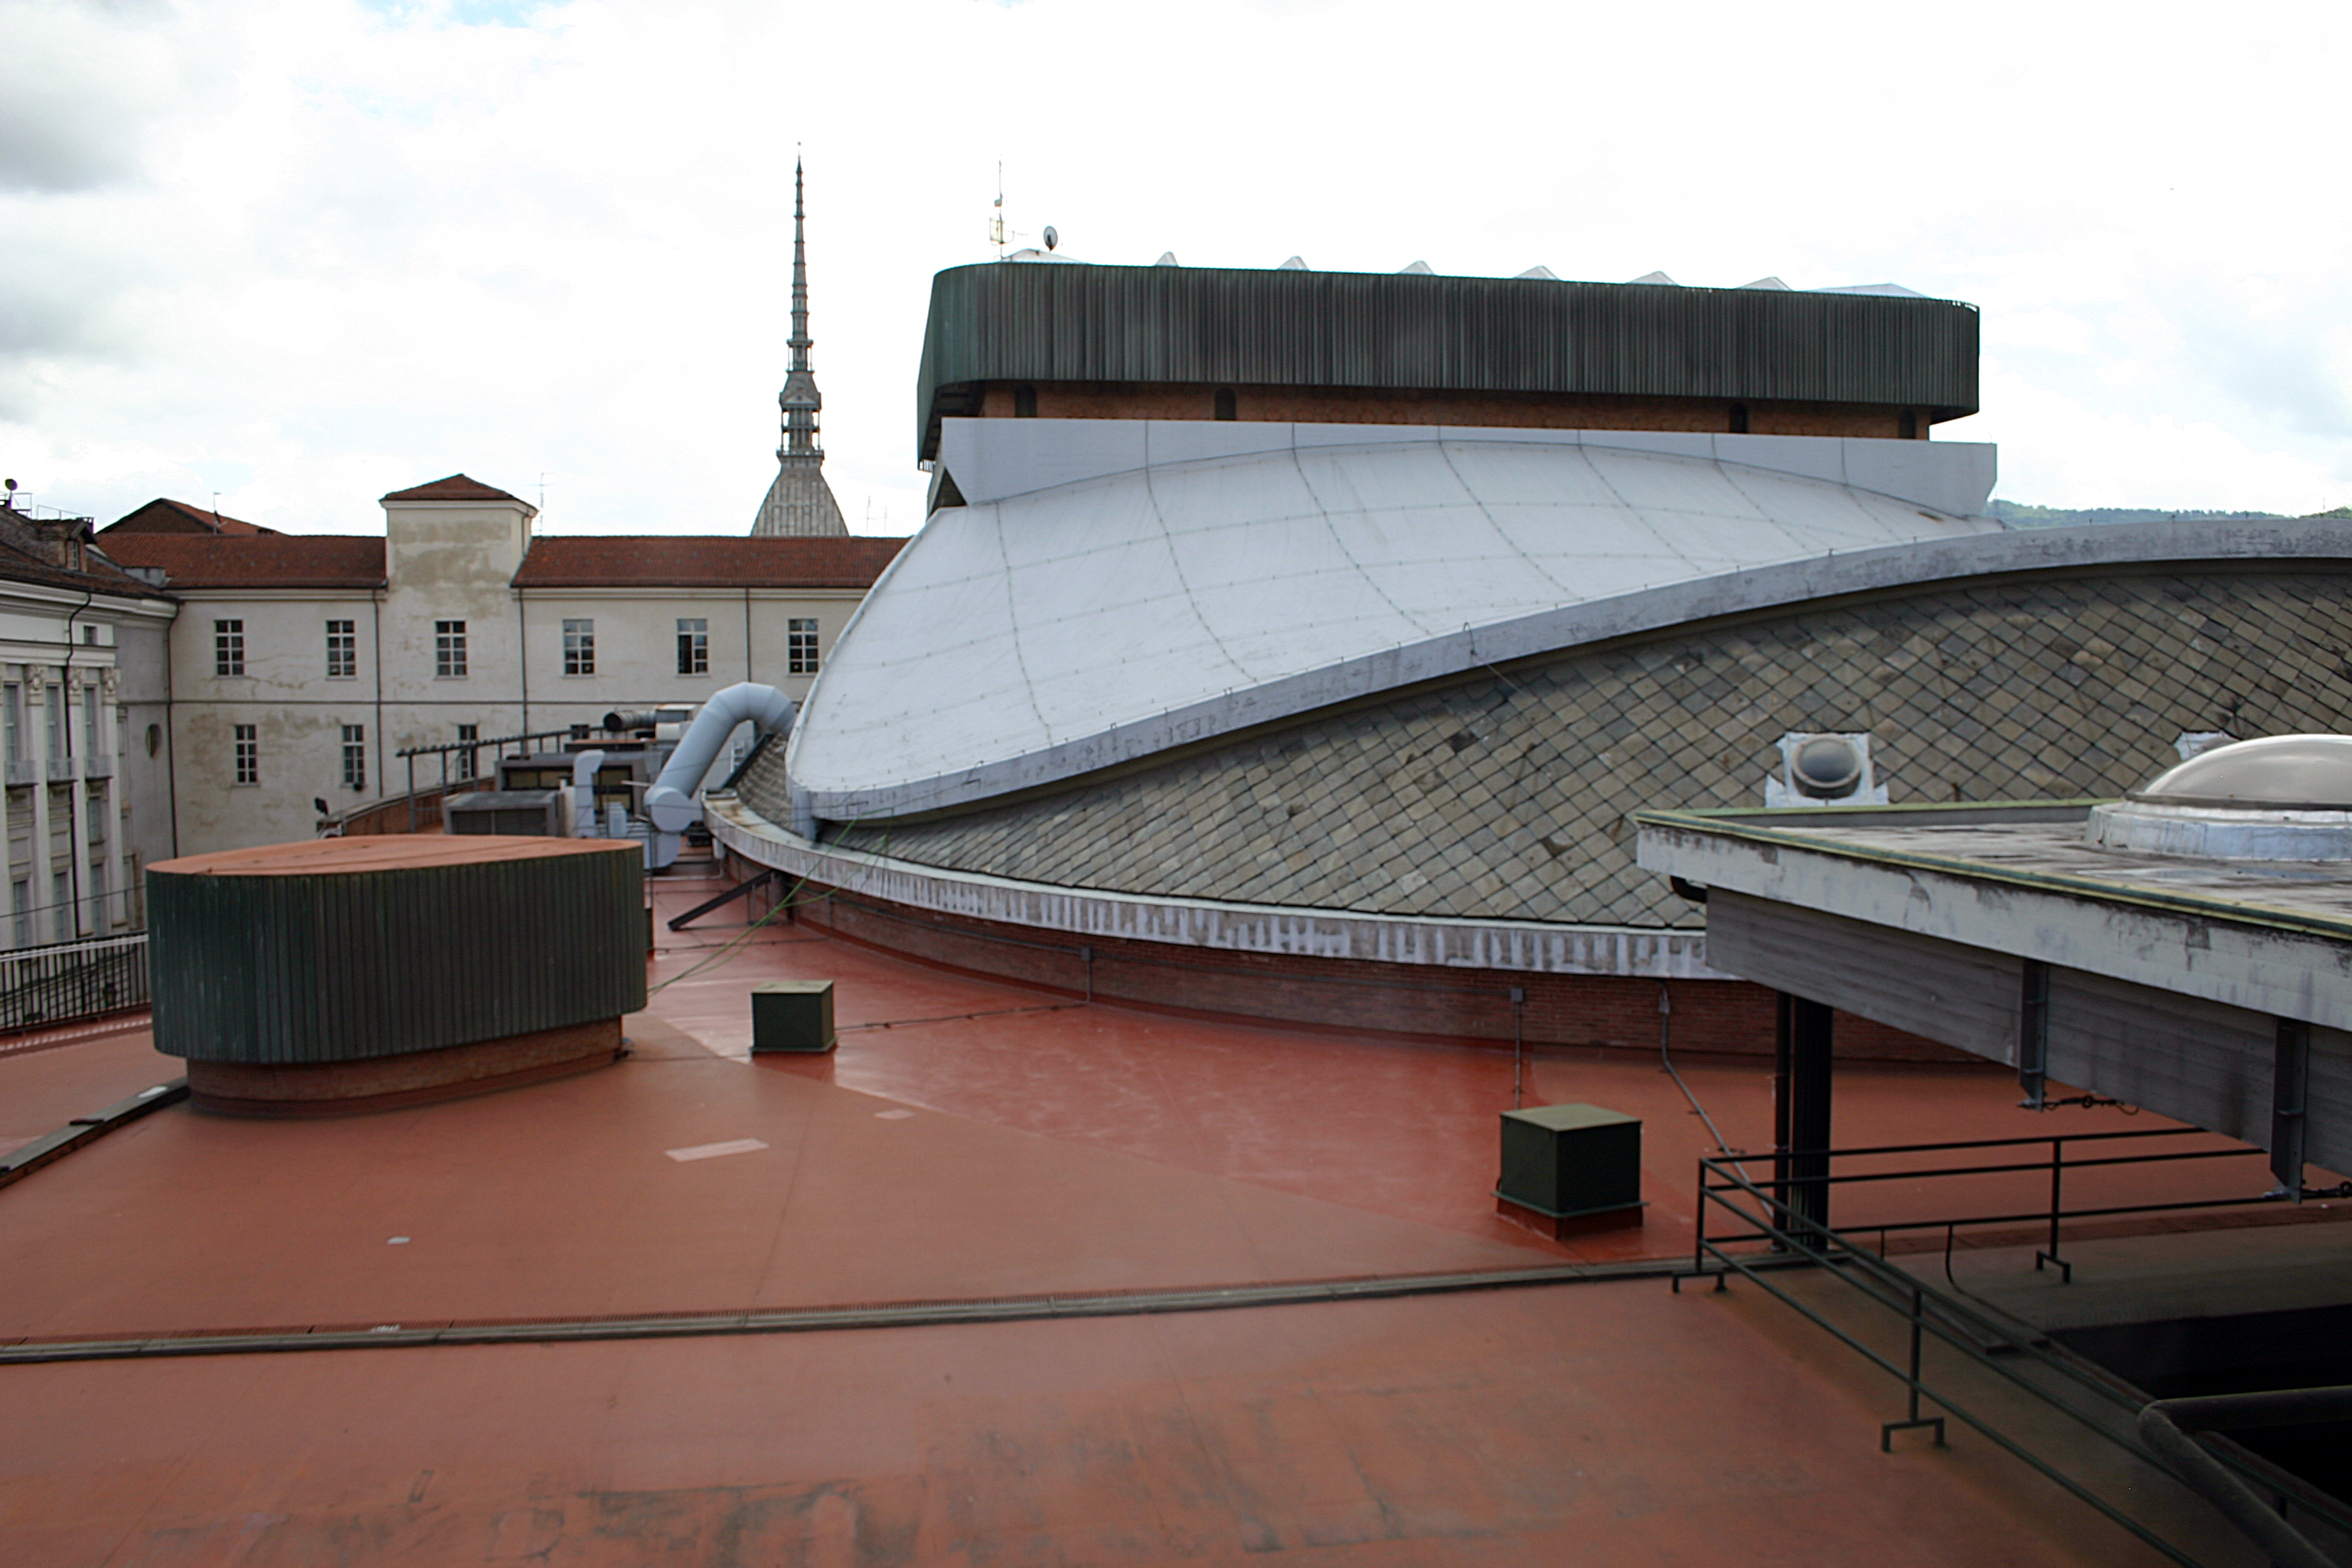 The terrace of the Teatro Regio with its typical cover with a hyperbolic paraboloid shape, with the fly tower on the top